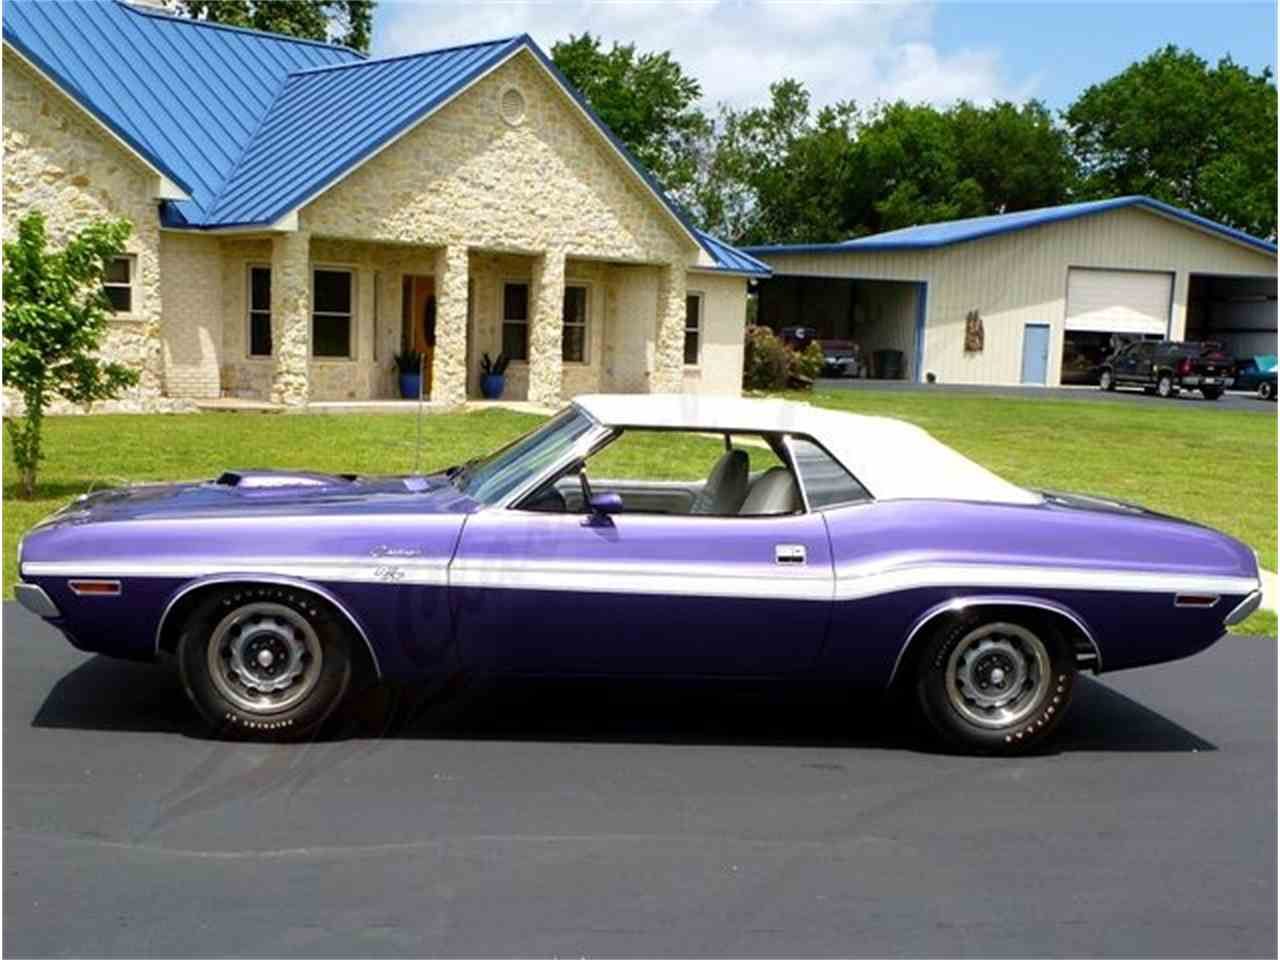 Large Picture of Classic 1970 Dodge CHALLENGER CONVERTIBLE R/T located in Texas - $189,500.00 - BVHV